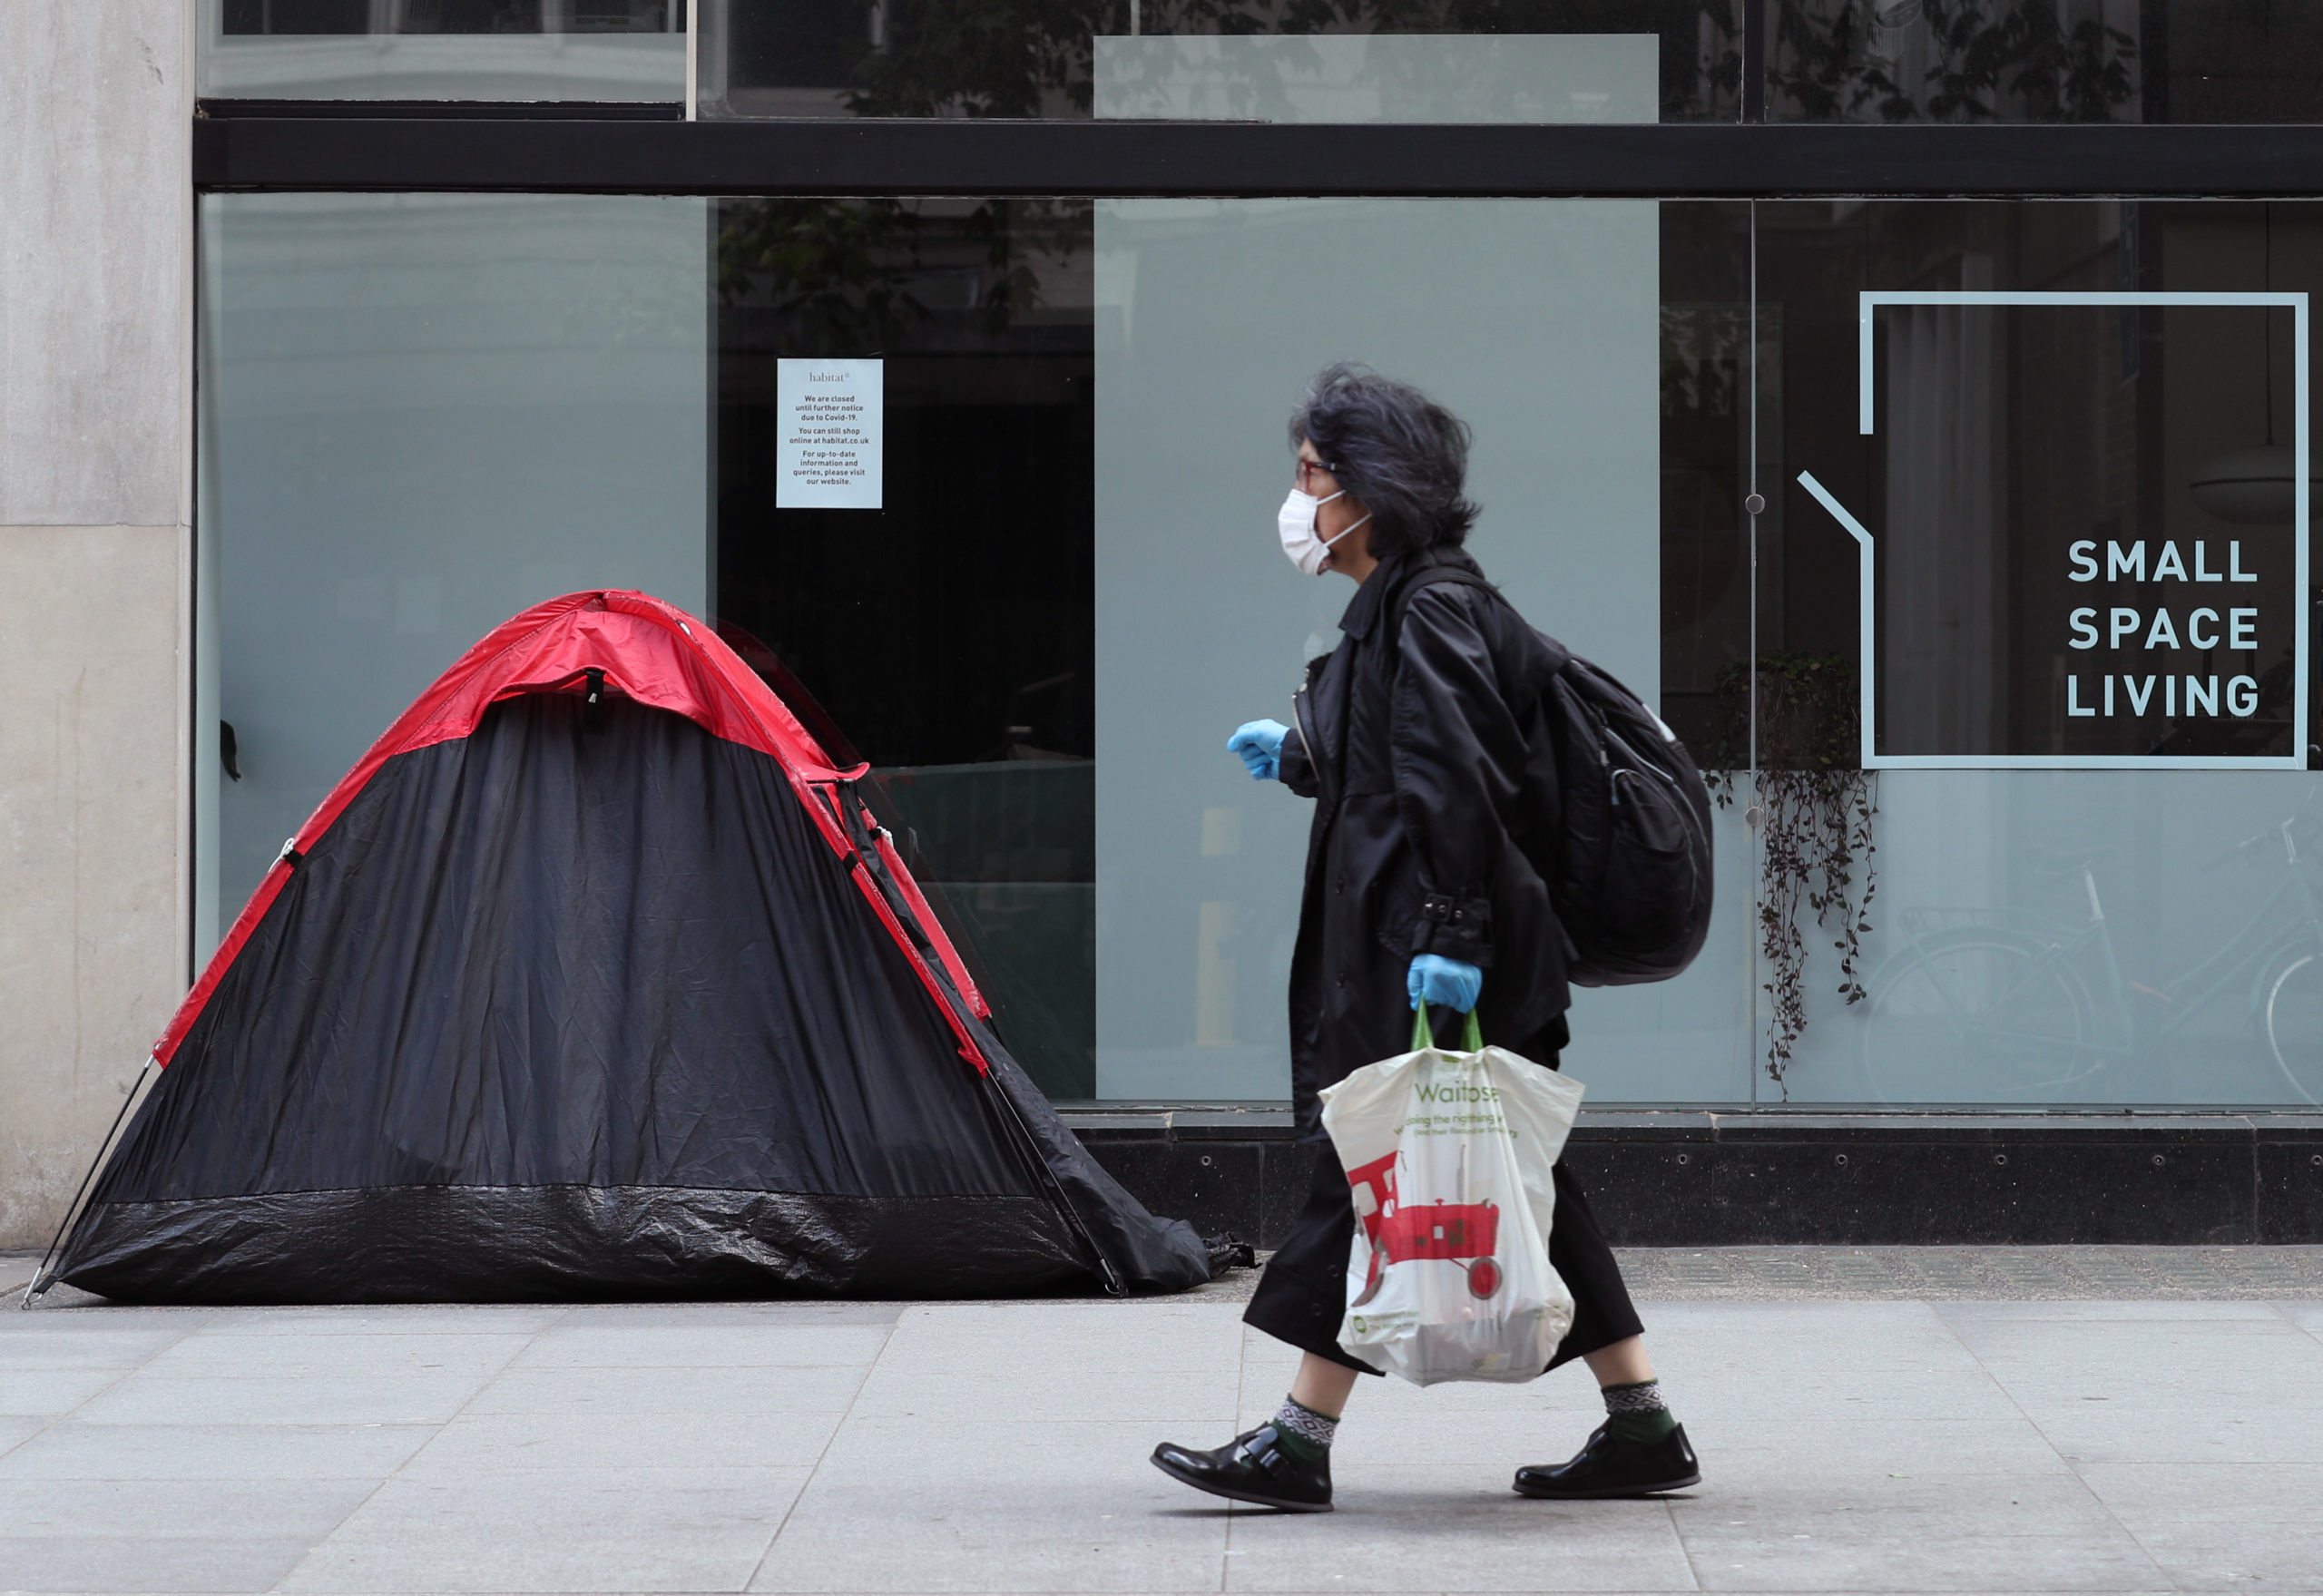 A woman walking past a homeless person's tent in London